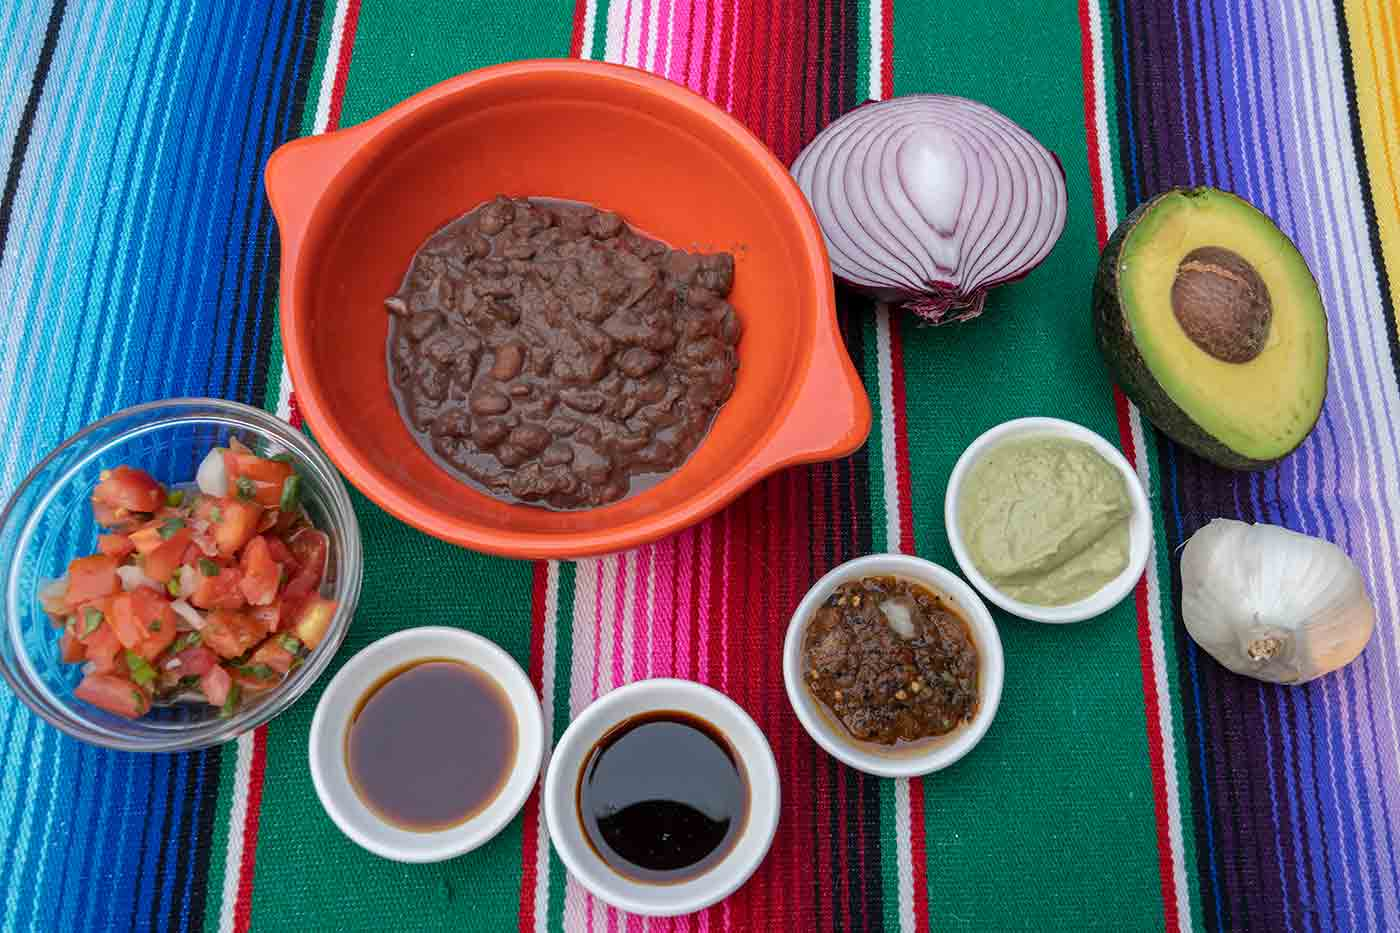 Tacodeli ingredients including beans soy sauce vinegar salsas and pico de gallo